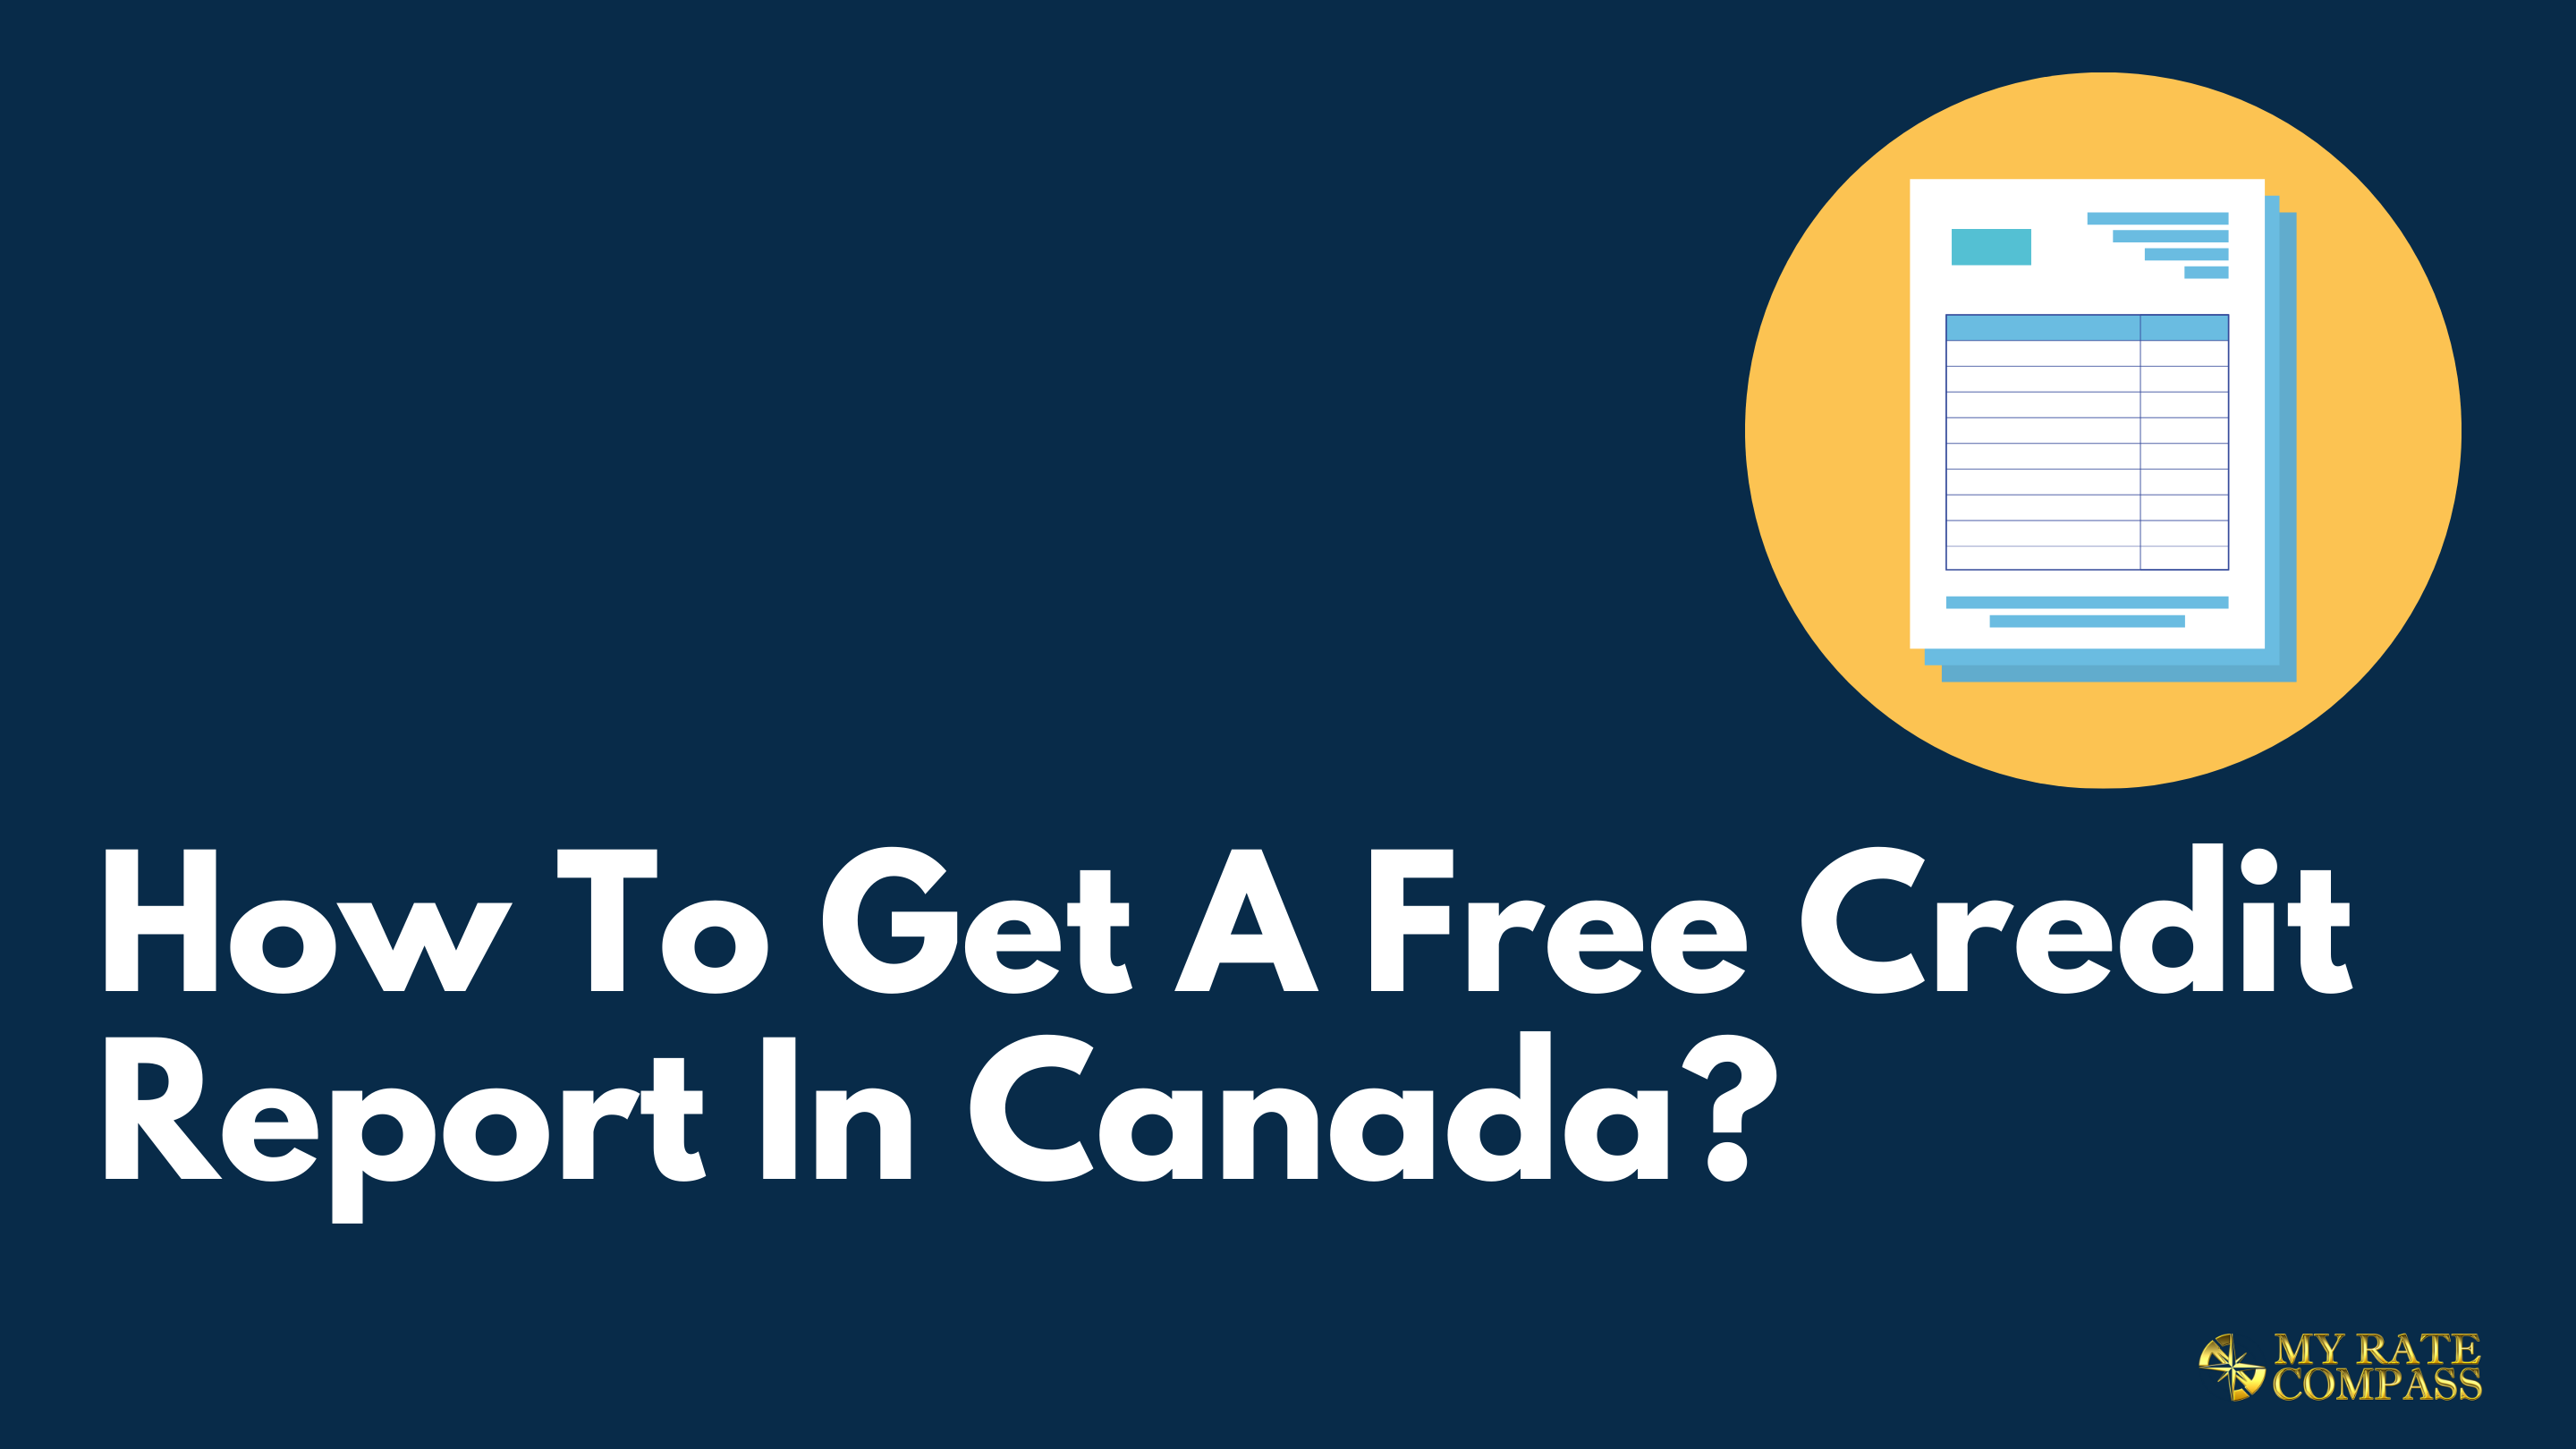 How to get a free credit report In Canada?